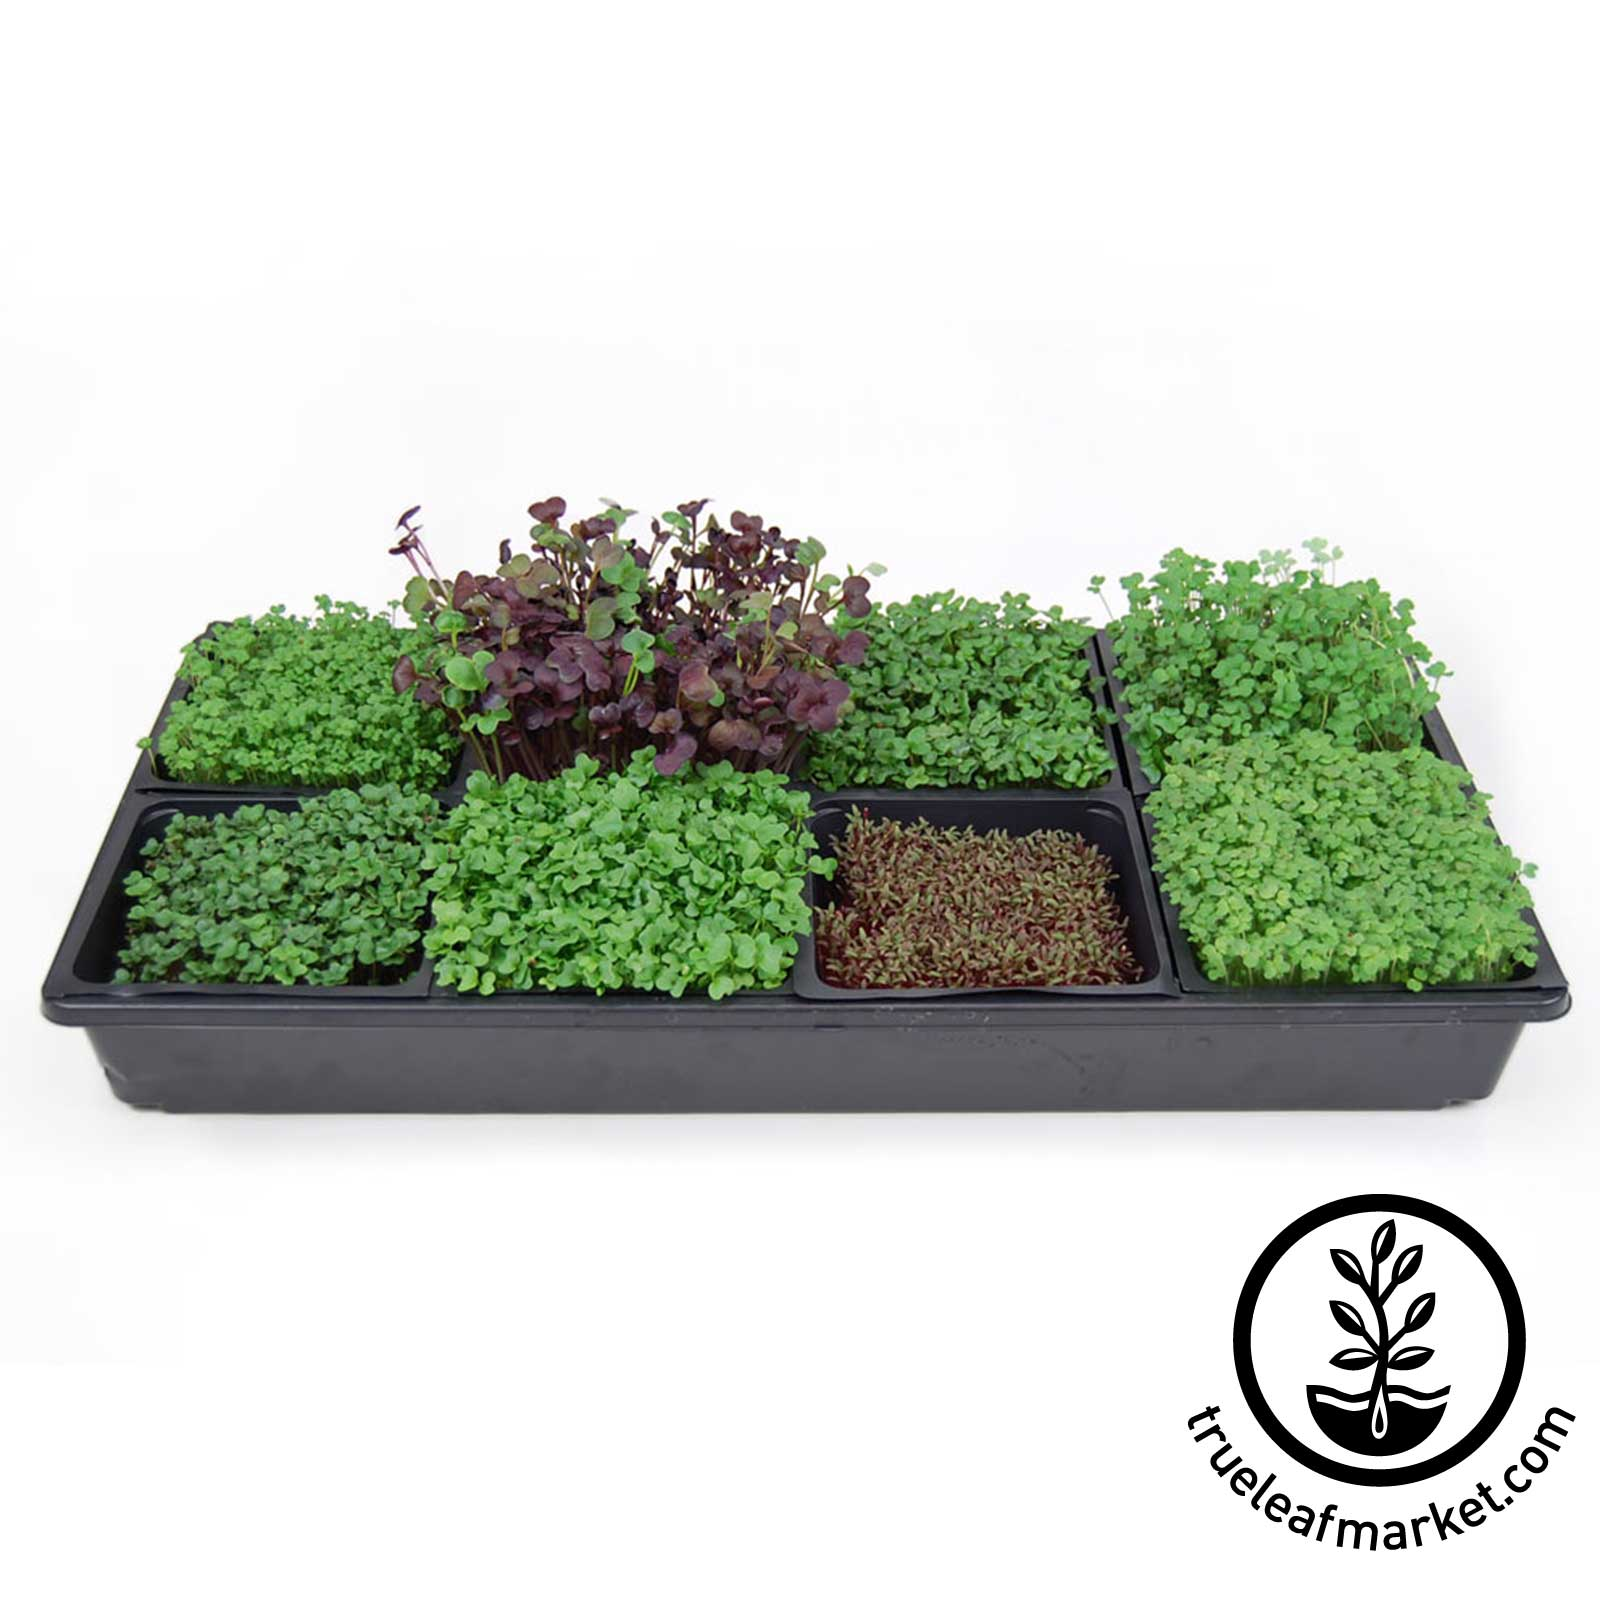 Micro mats 5 x 5 hydroponic grow pads for wheatgrass for Best growing medium for microgreens